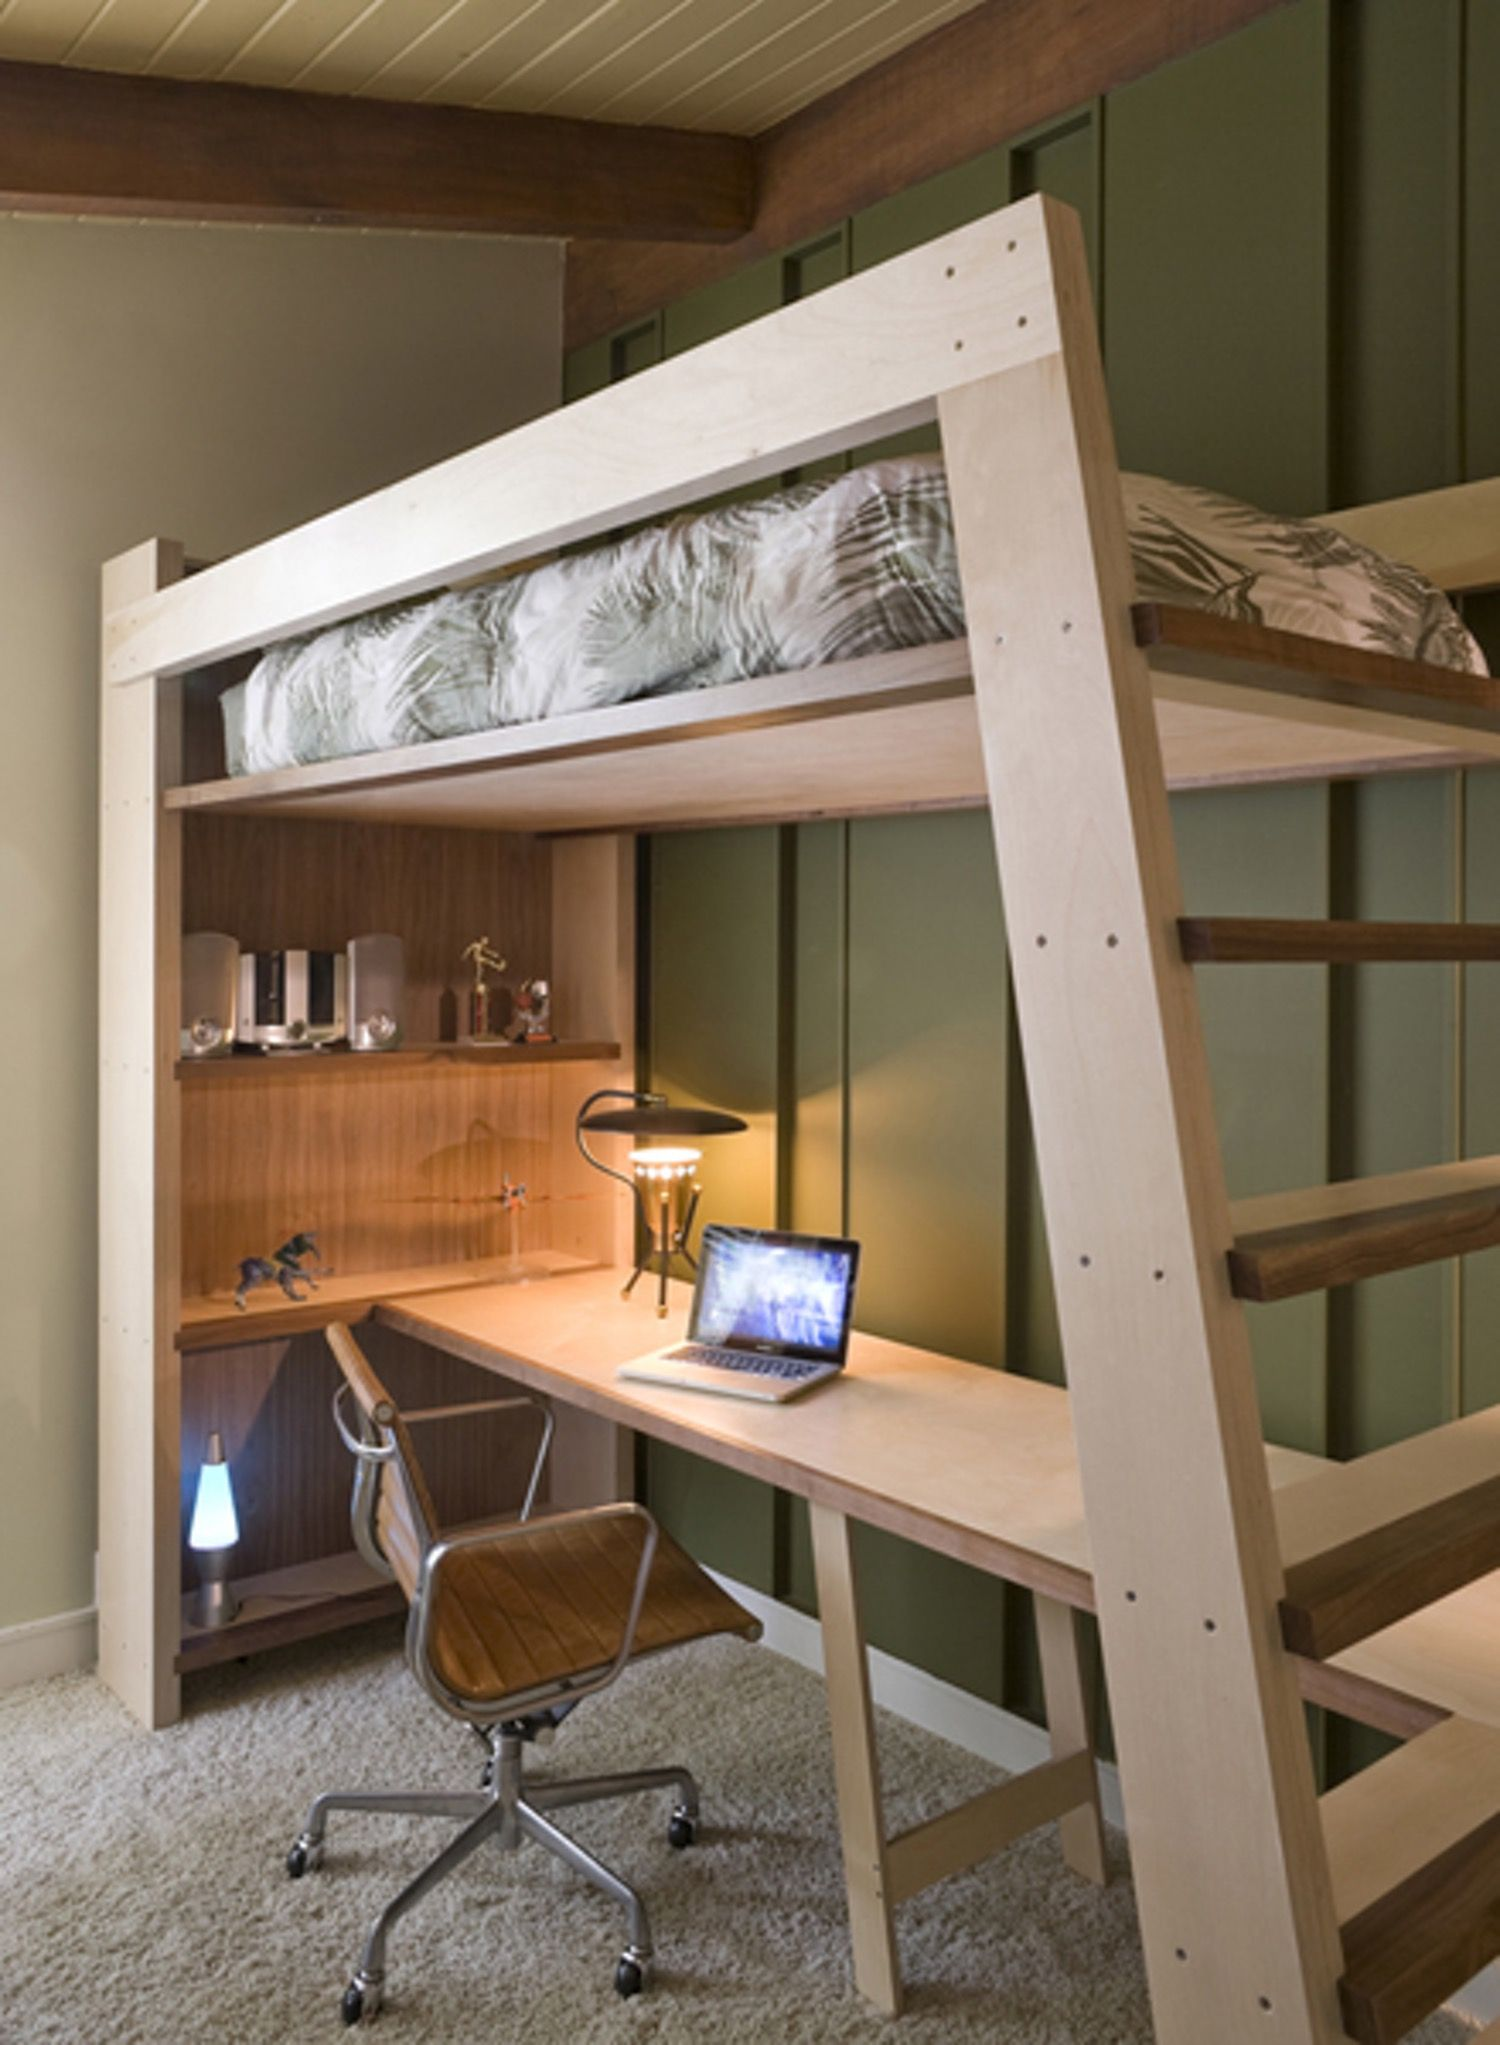 Loft bed with desk full size  Handmade Modern A Lofted Bed You Canut Find In Stores  Modern